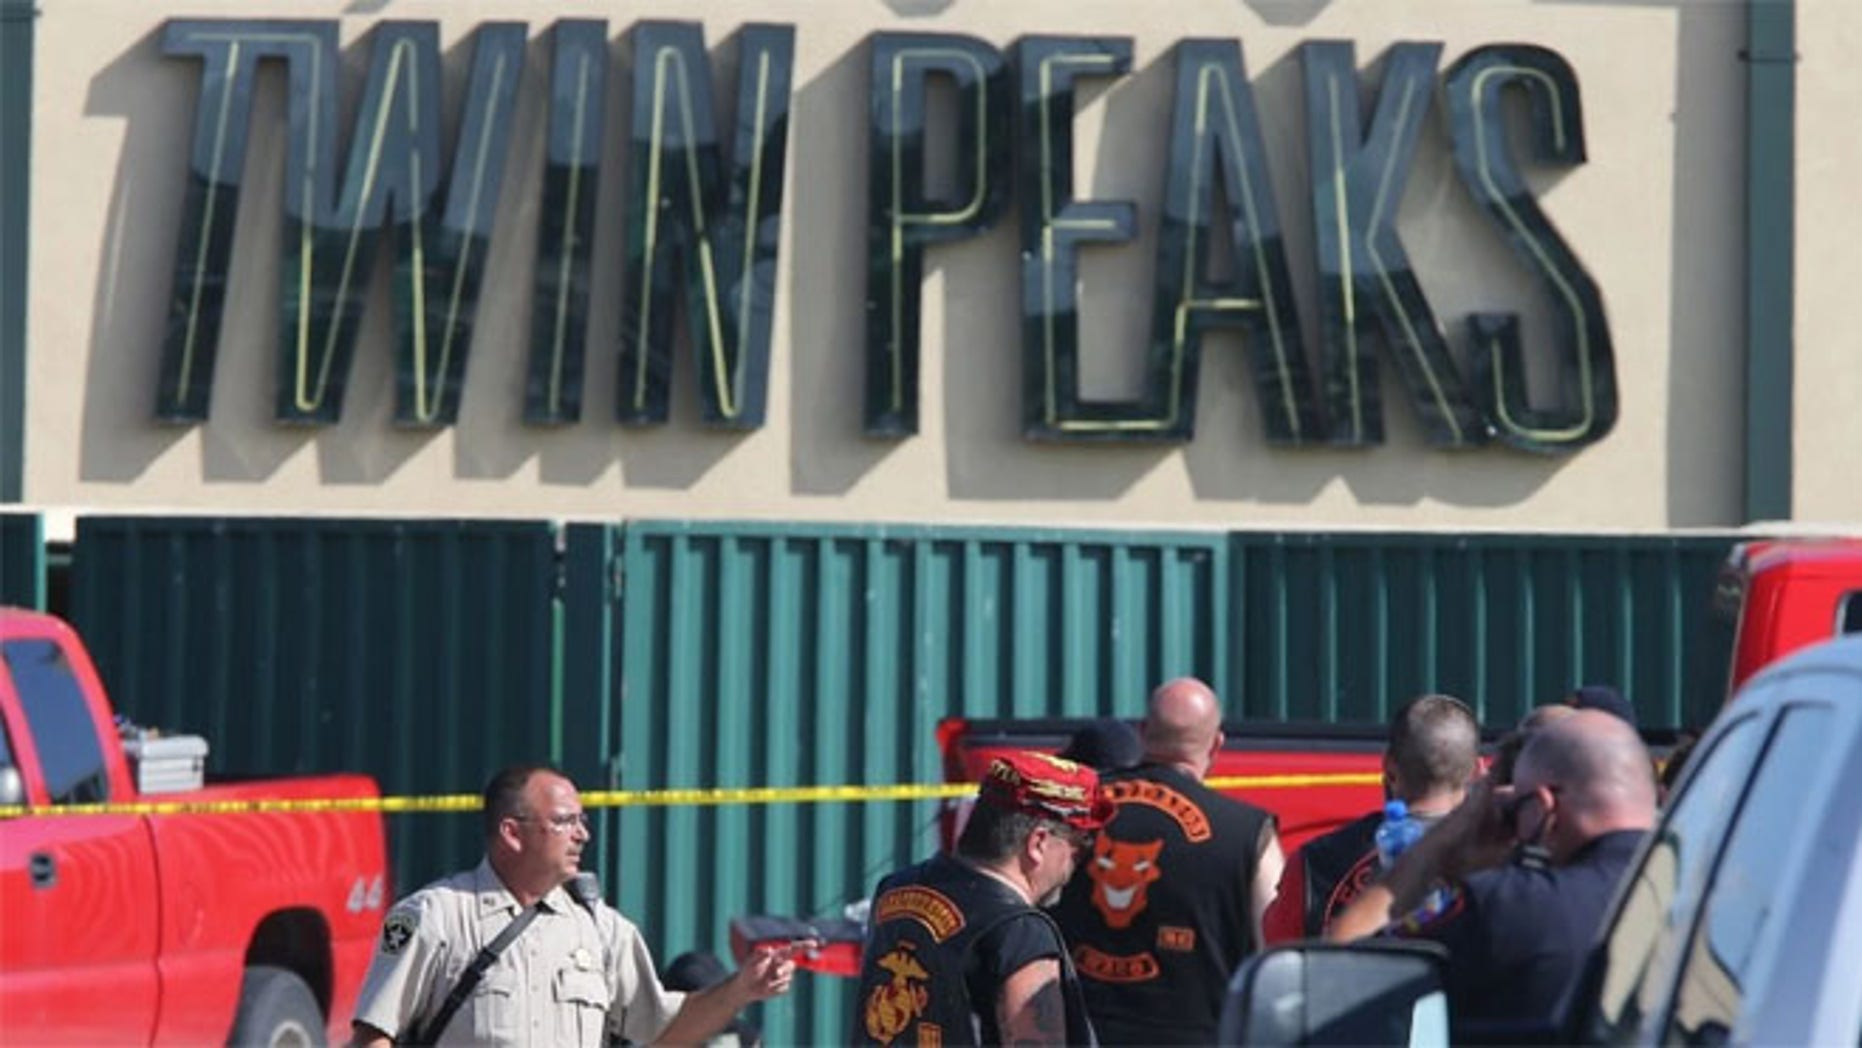 Violence at a Waco Twin Peaks restaurant left 9 gang members dead and injured 18 others.